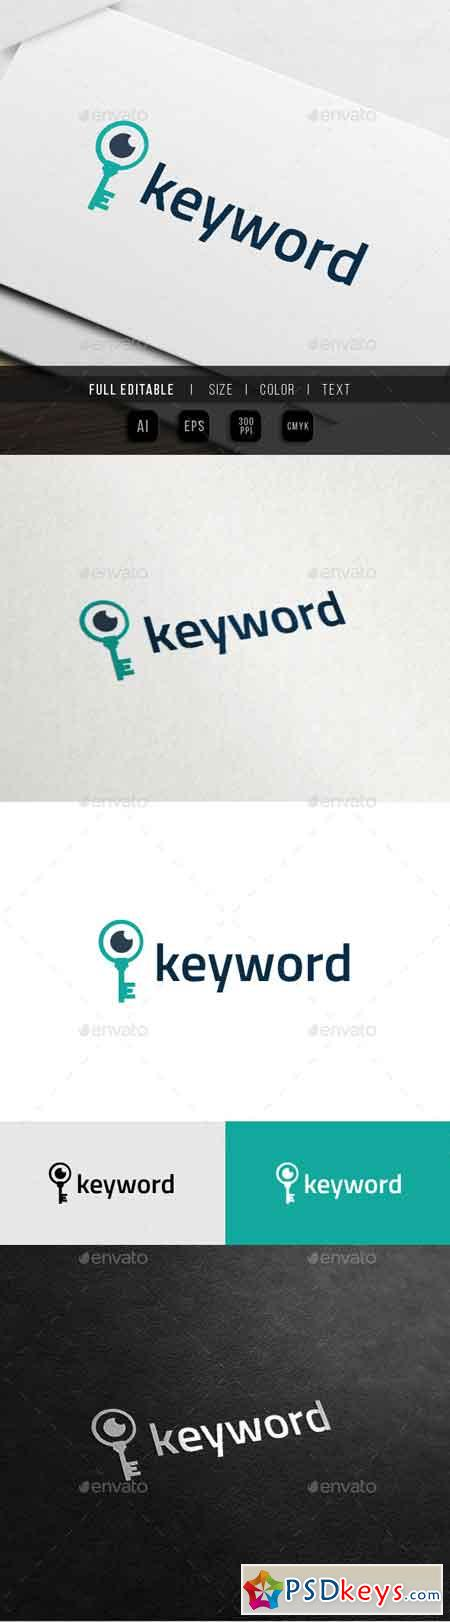 Search Keyword - SEO Expert - Key Eye Logo 10988027